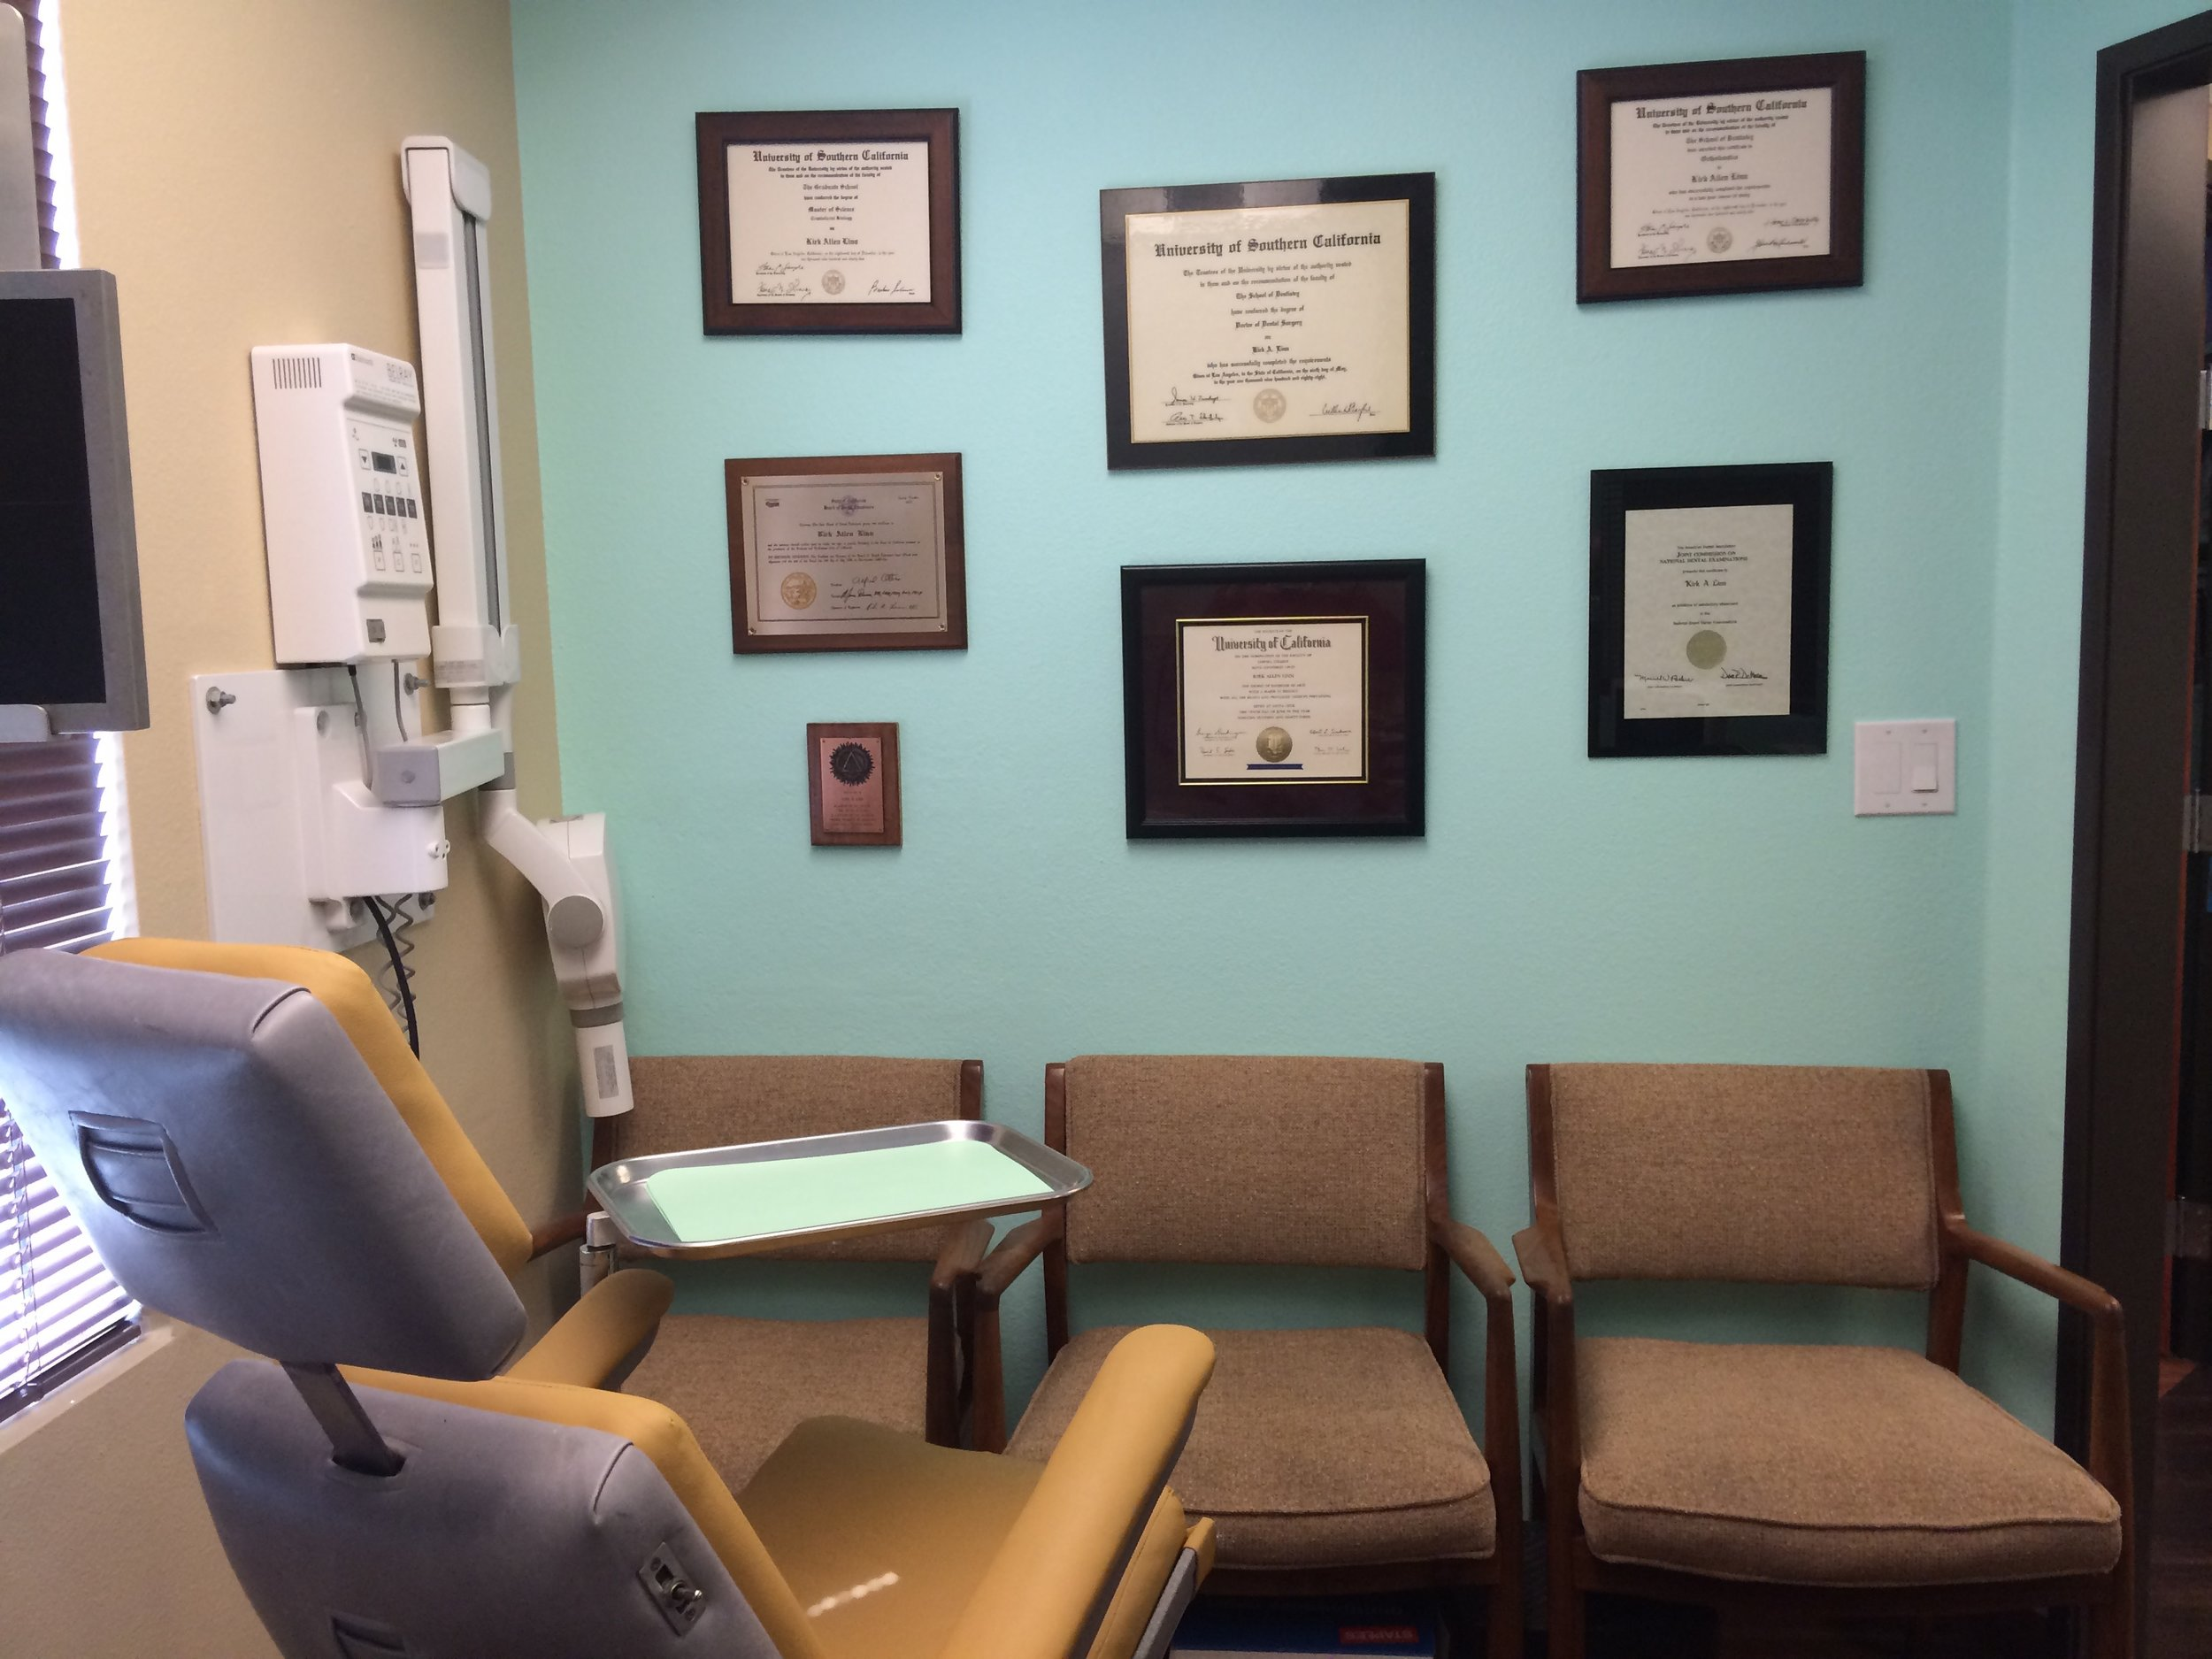 Clinical Exam and Records Area